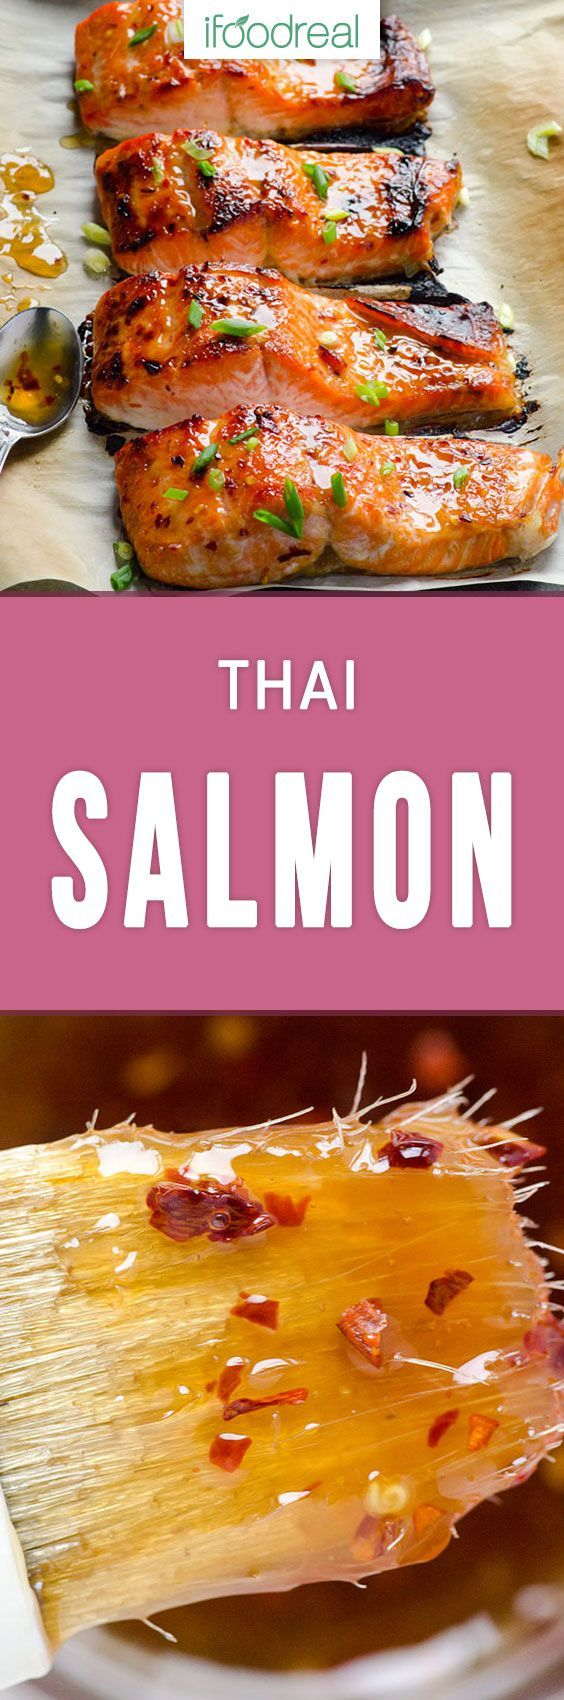 Thai Baked Salmon Recipe made with 3 ingredients in 15 minutes, can be grilled or oven baked. Out of this world Thai sweet chili salmon with rave reader reviews! #ifoodreal #salmon #healthyfood #healthyrecipes